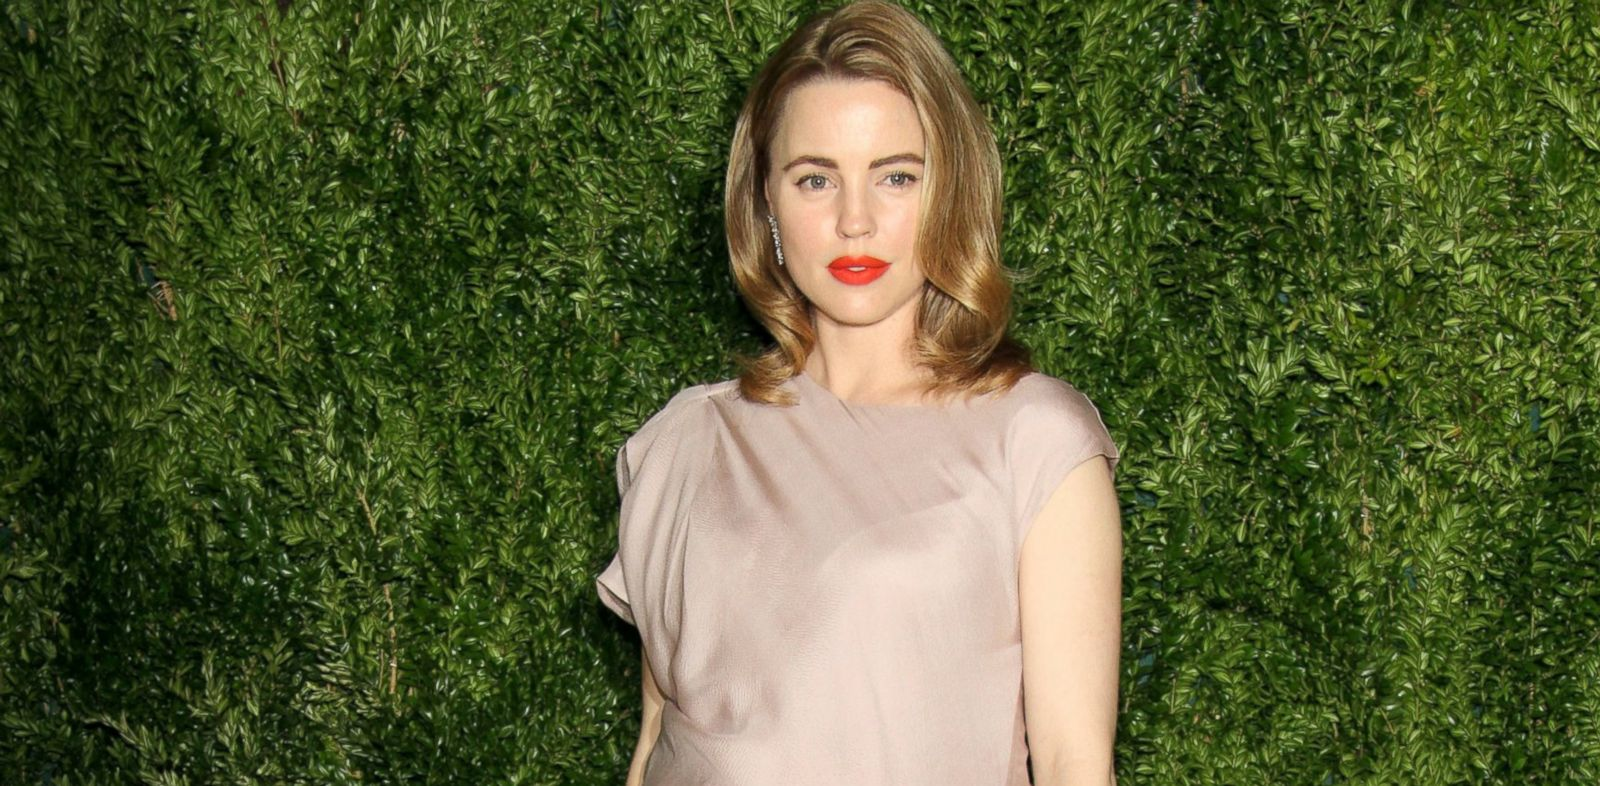 PHOTO: Actress Melissa George attends CFDA and Vogue 2013 Fashion Fund Finalists Celebration at Spring Studios, Nov. 11, 2013 in New York.